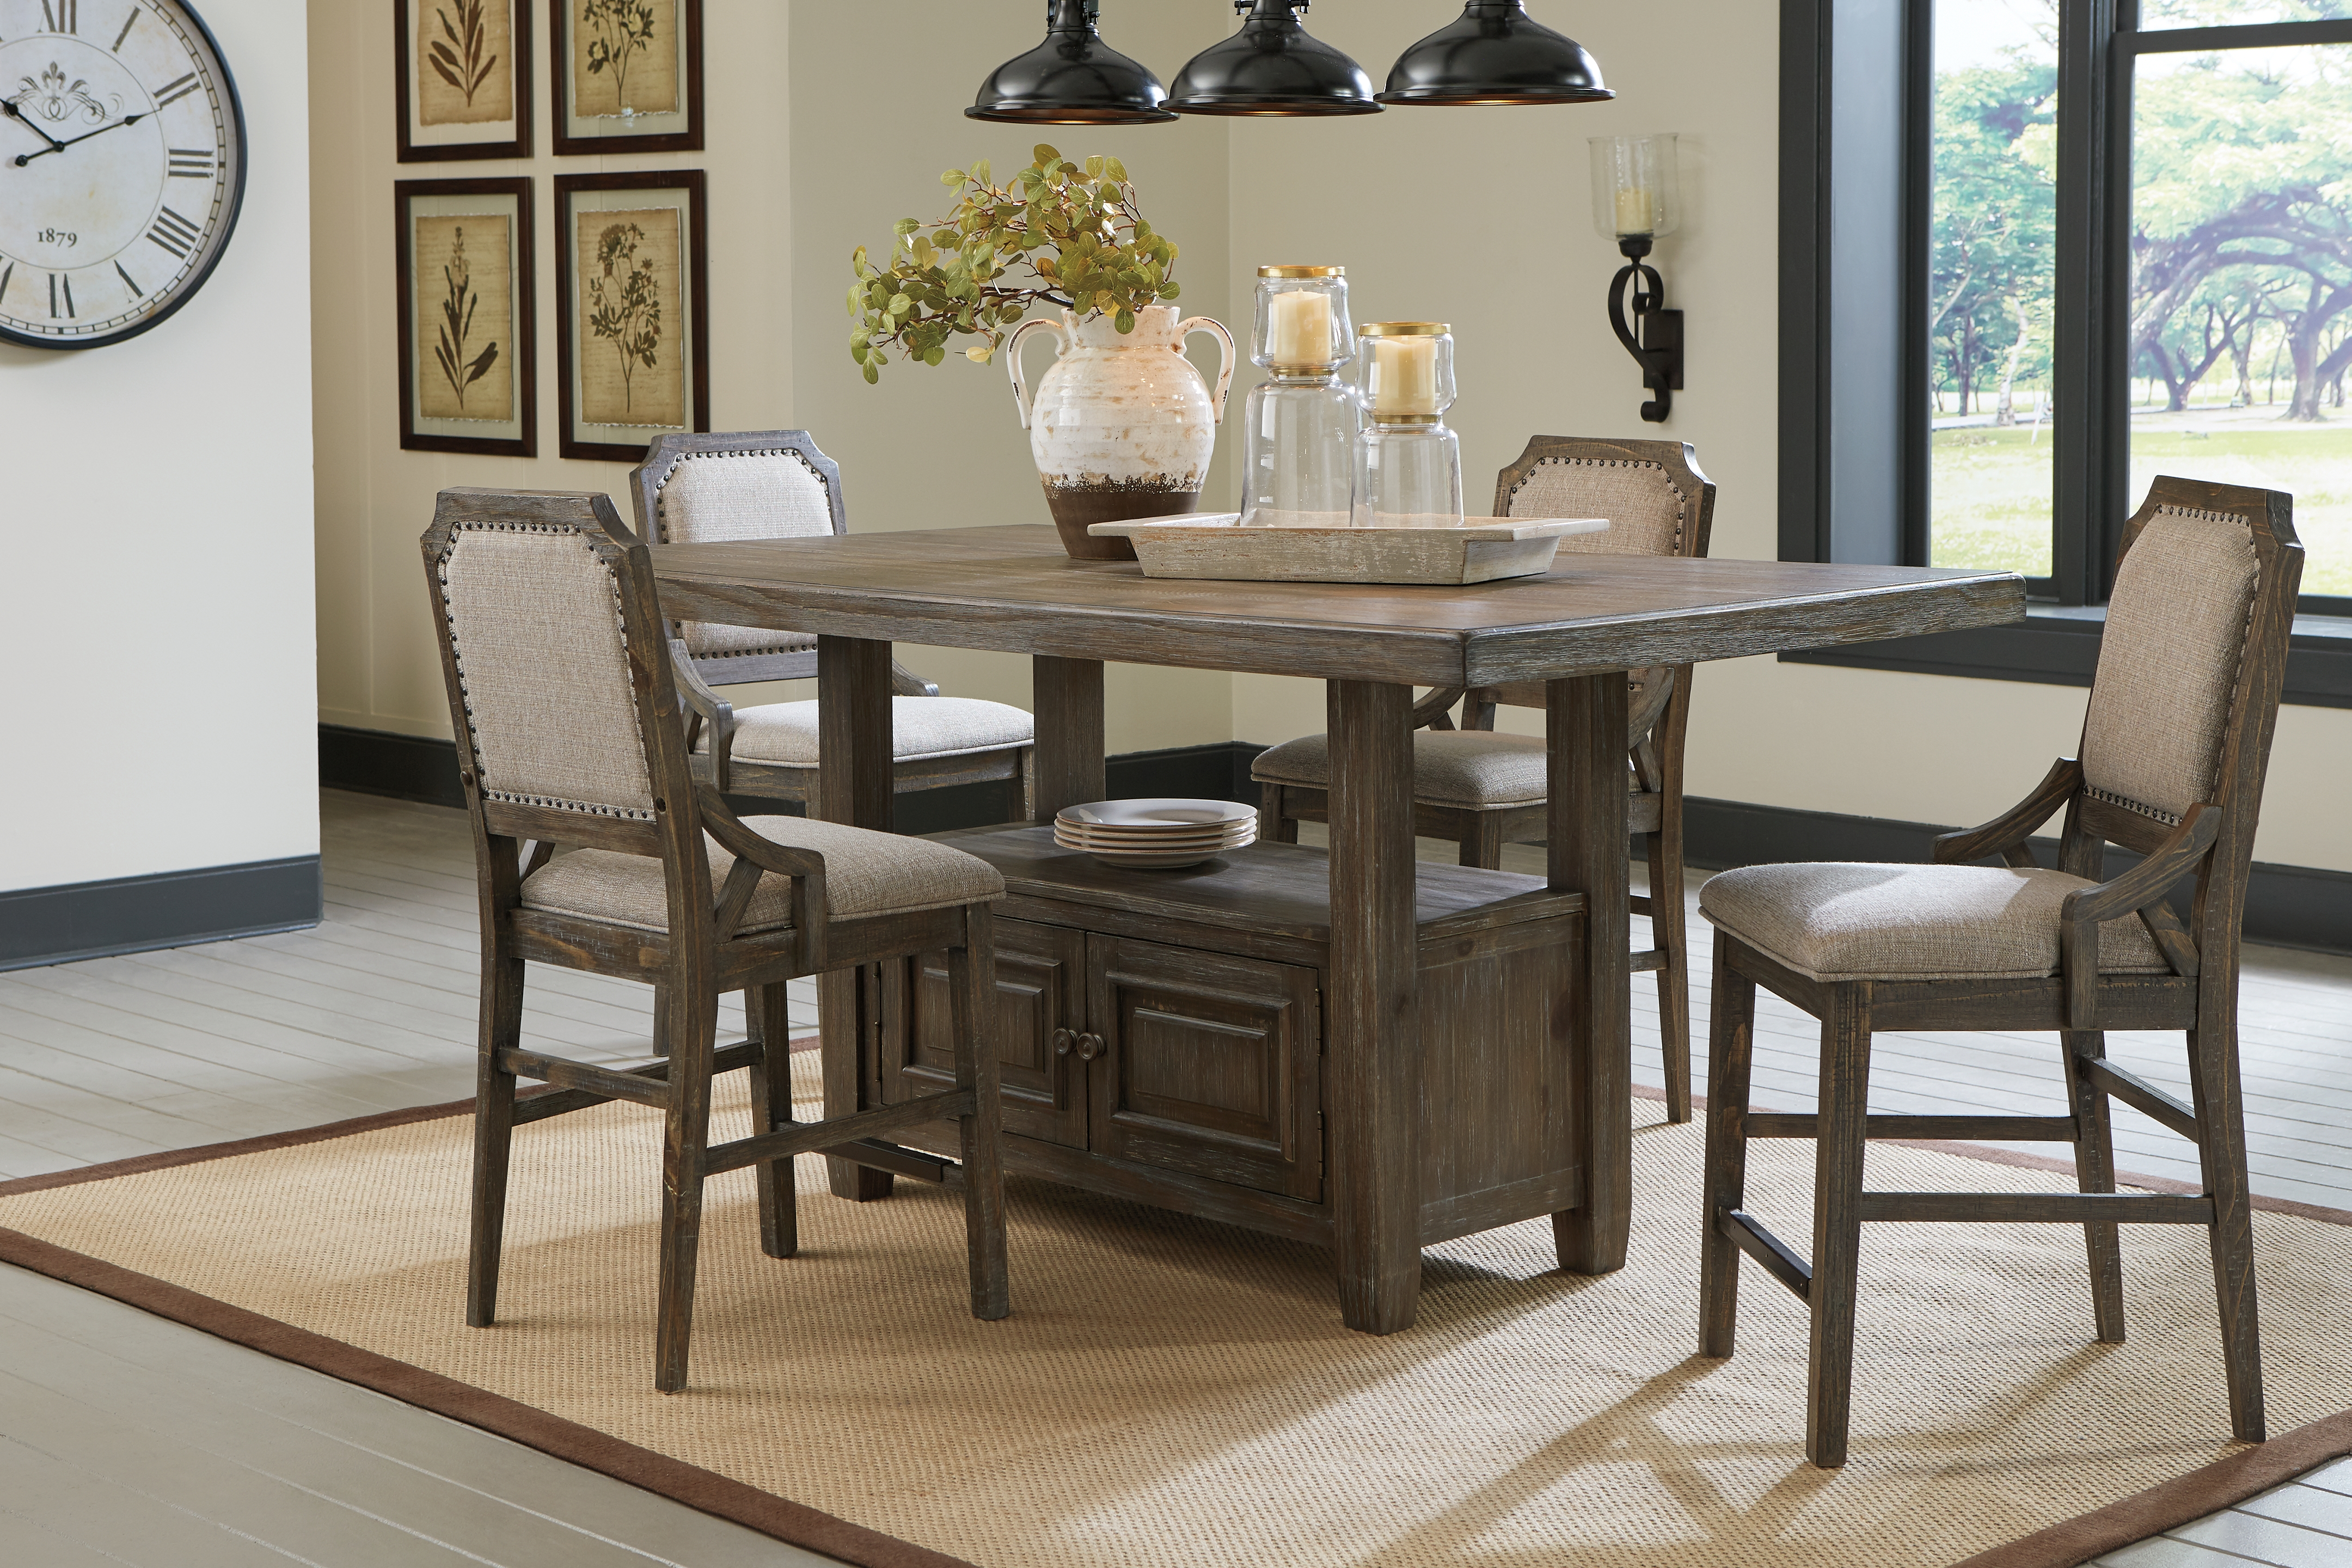 Wyndahl Counter Height Dining Room Table By Signature Design By Ashley Nis916792748 Bruce Furniture Floor Covering